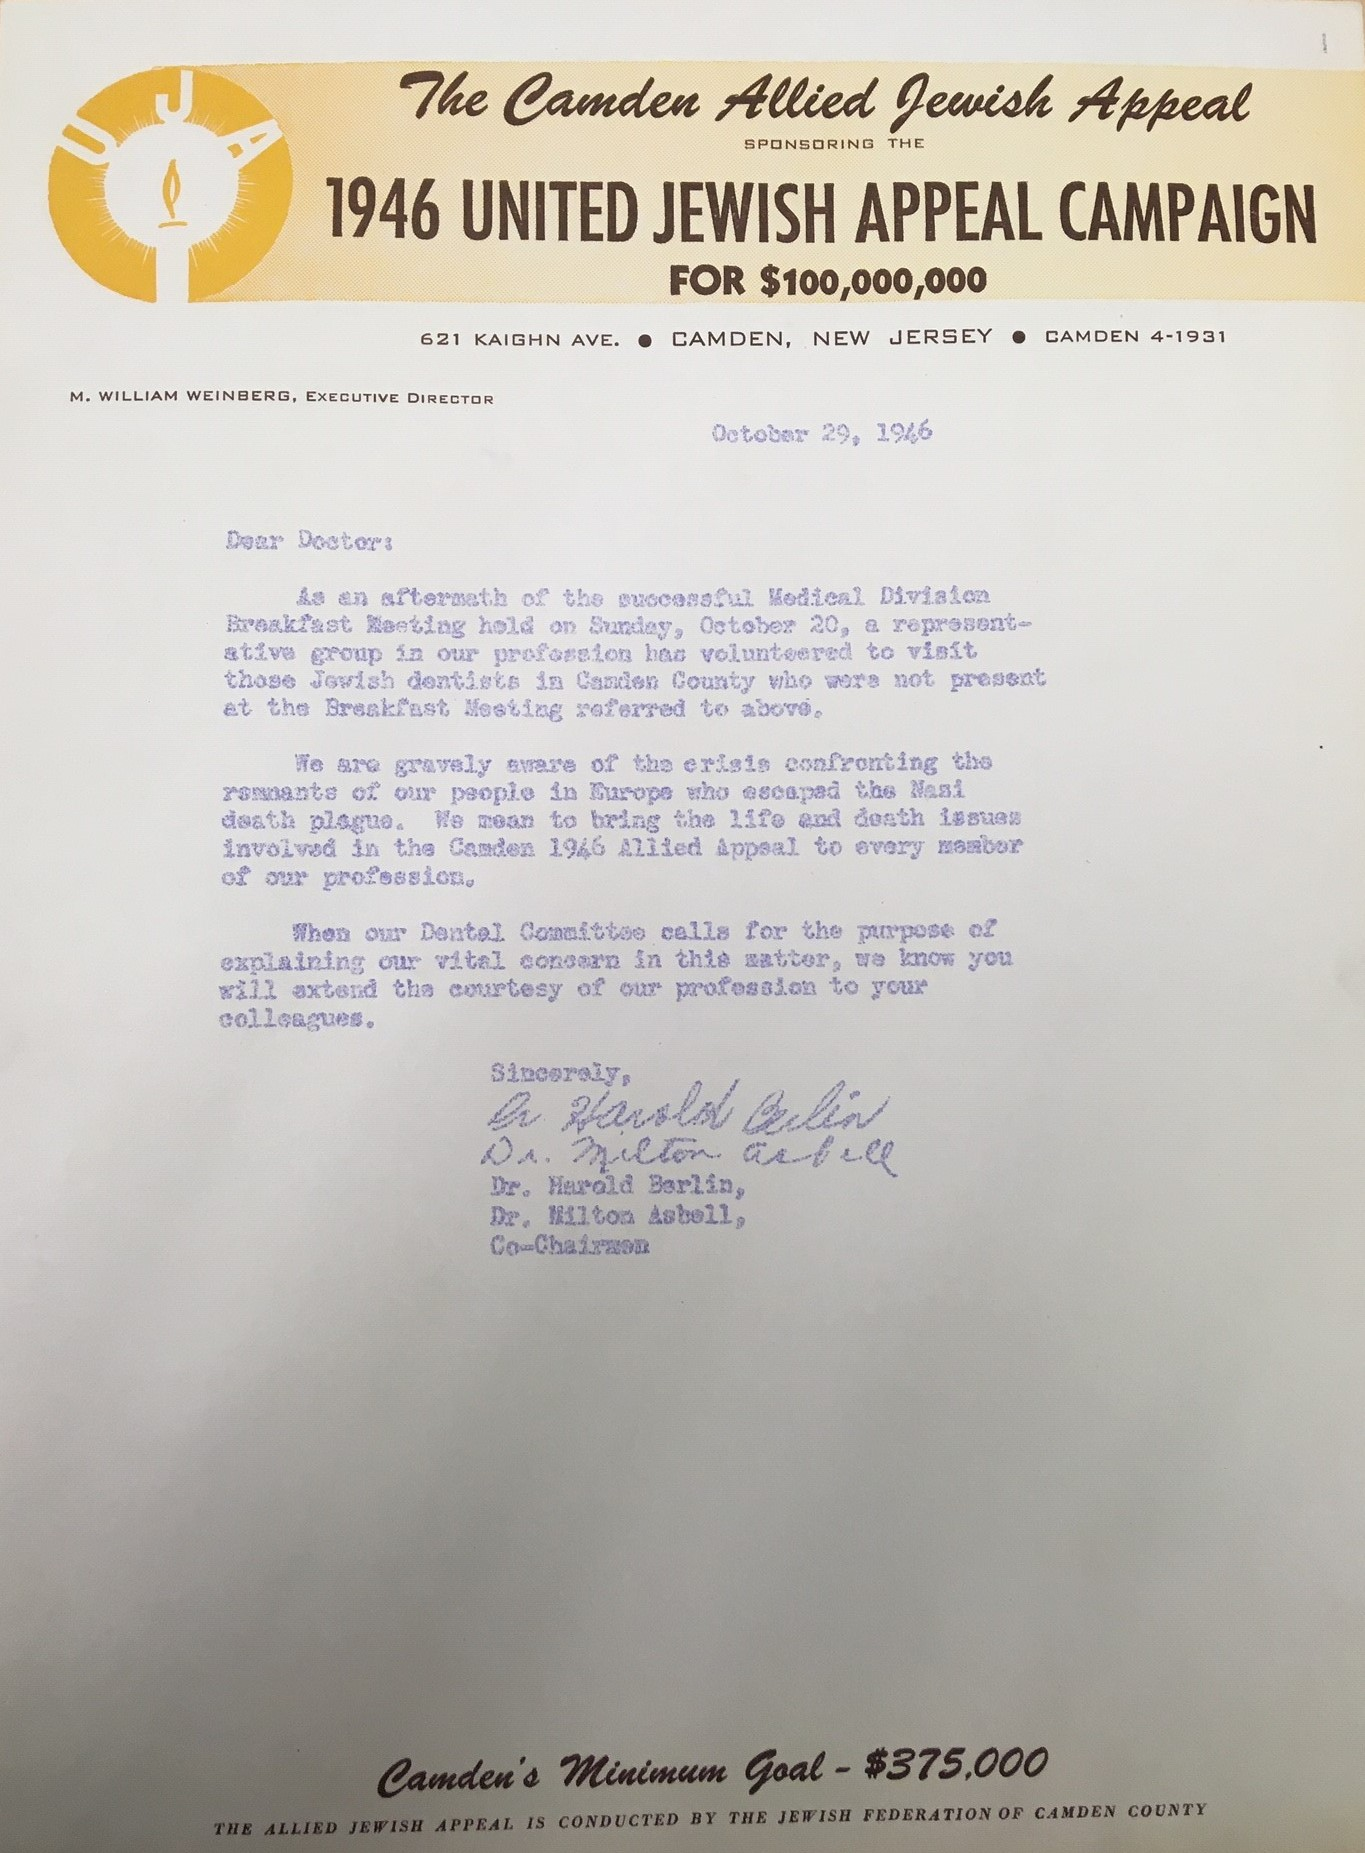 Letter from 1946 explaining fundraising efforts for the United Jewish Appeal Campaign